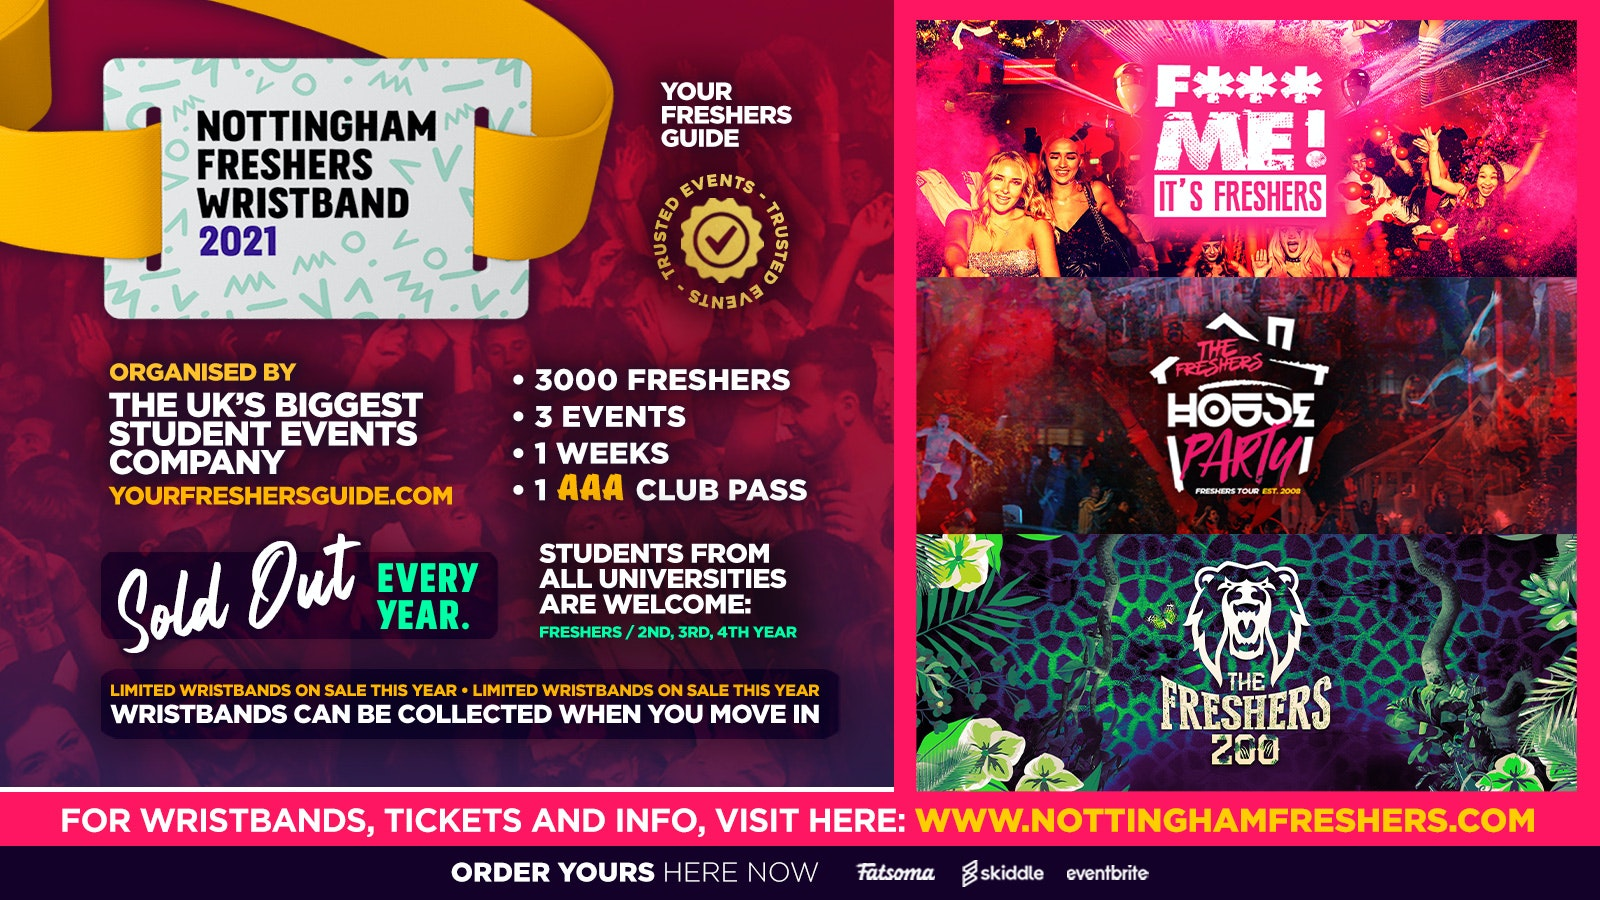 Nottingham Freshers Wristband 2021 – The Official Freshers Pass | Includes the biggest events in Nottingham